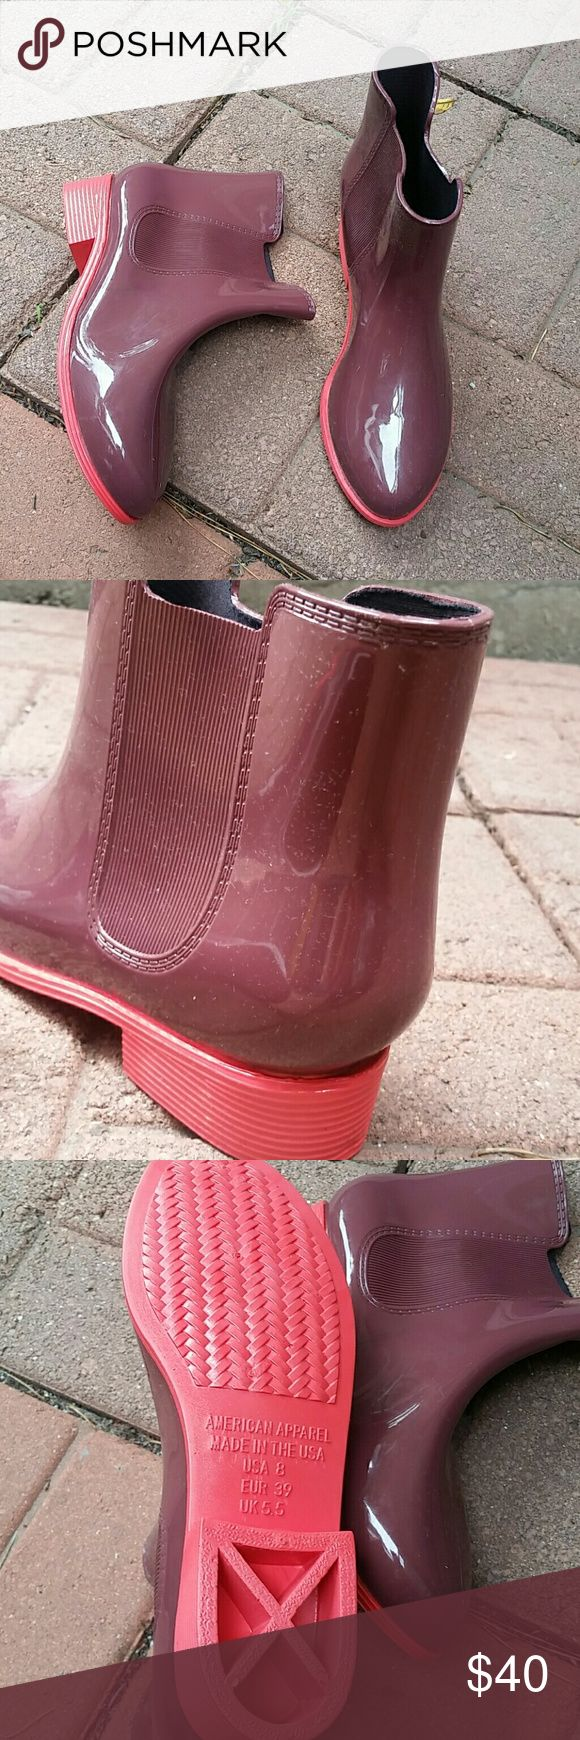 American Apparel jelly ankle rain boots NEW American Apparel a little above ankle rain boots. Super limited!  Can even be used as reg boots, super comfortable.  Burgundy and red combo . New never worn . American Apparel Shoes Ankle Boots & Booties